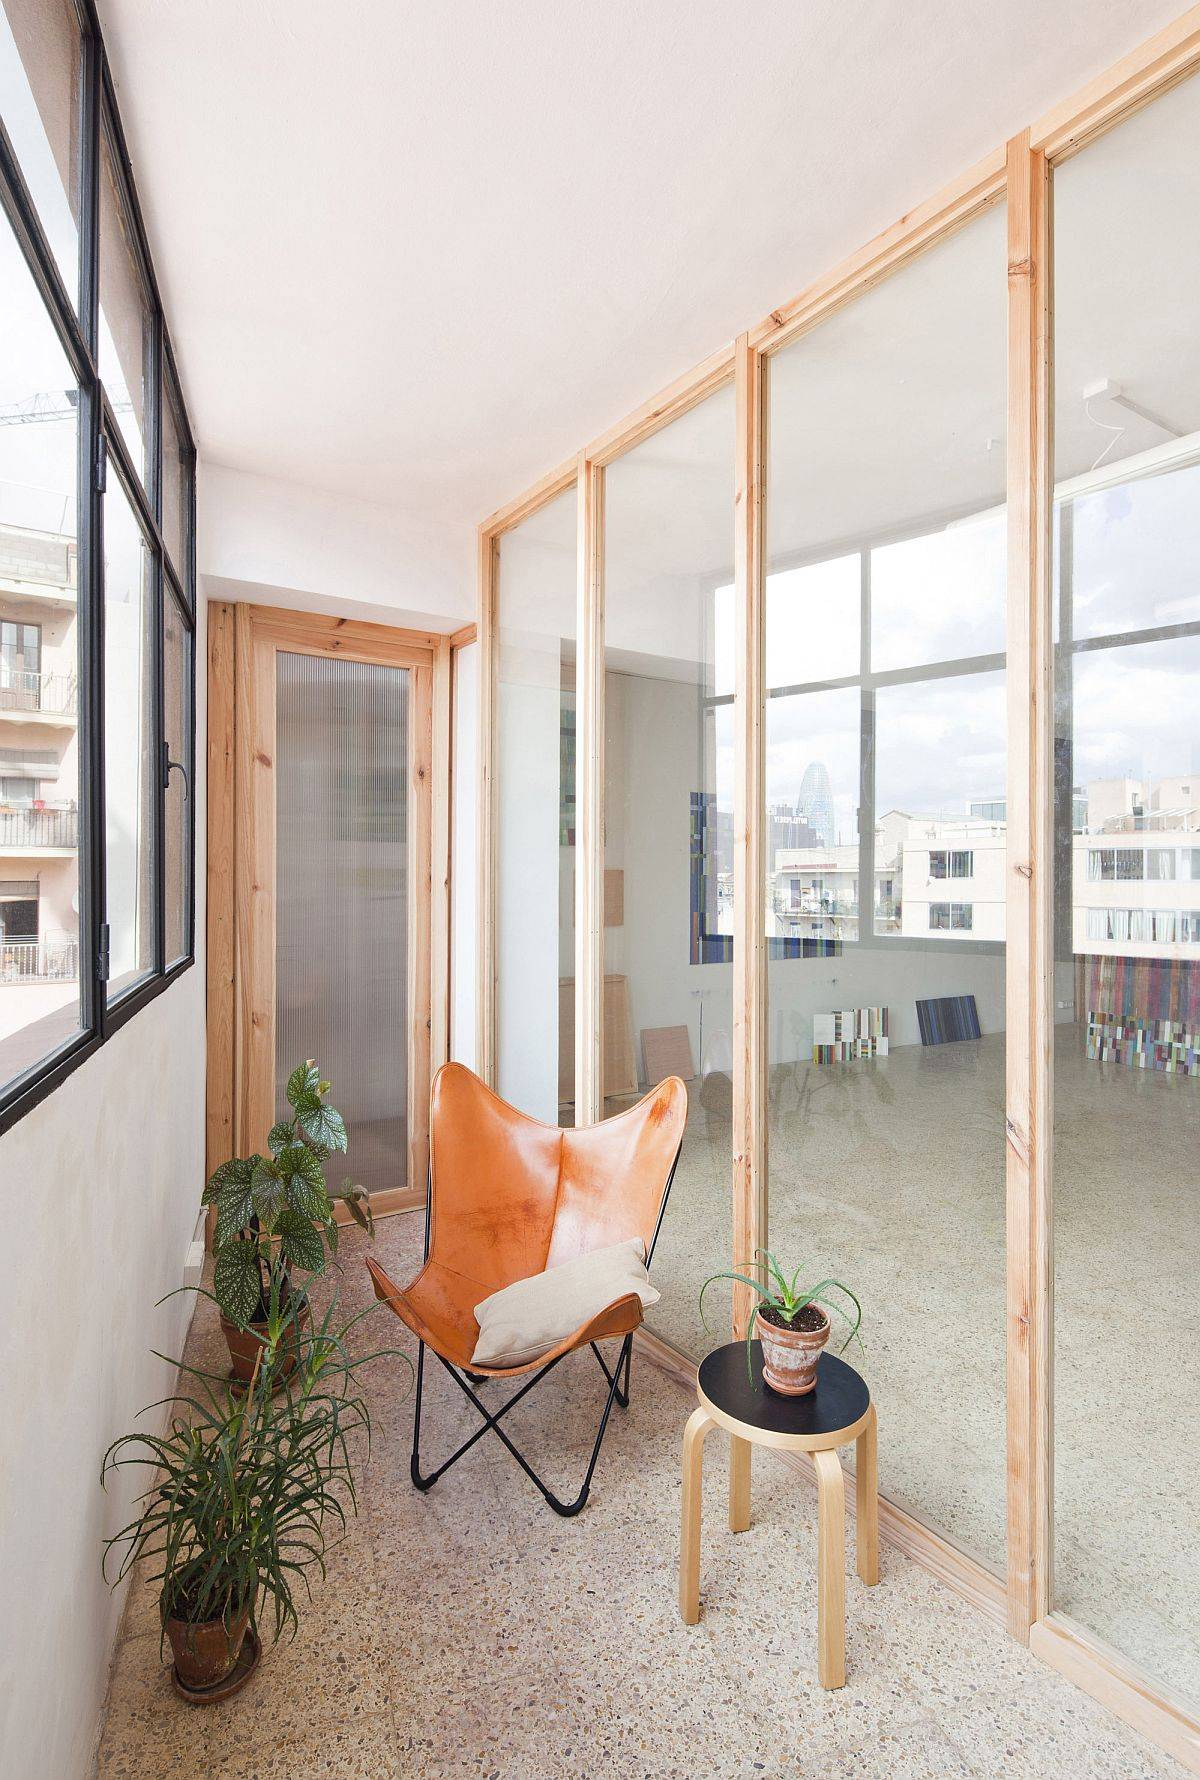 Creative-use-of-wooden-frames-and-glass-walls-brings-new-spatial-configuration-to-this-Barcelona-home-27377